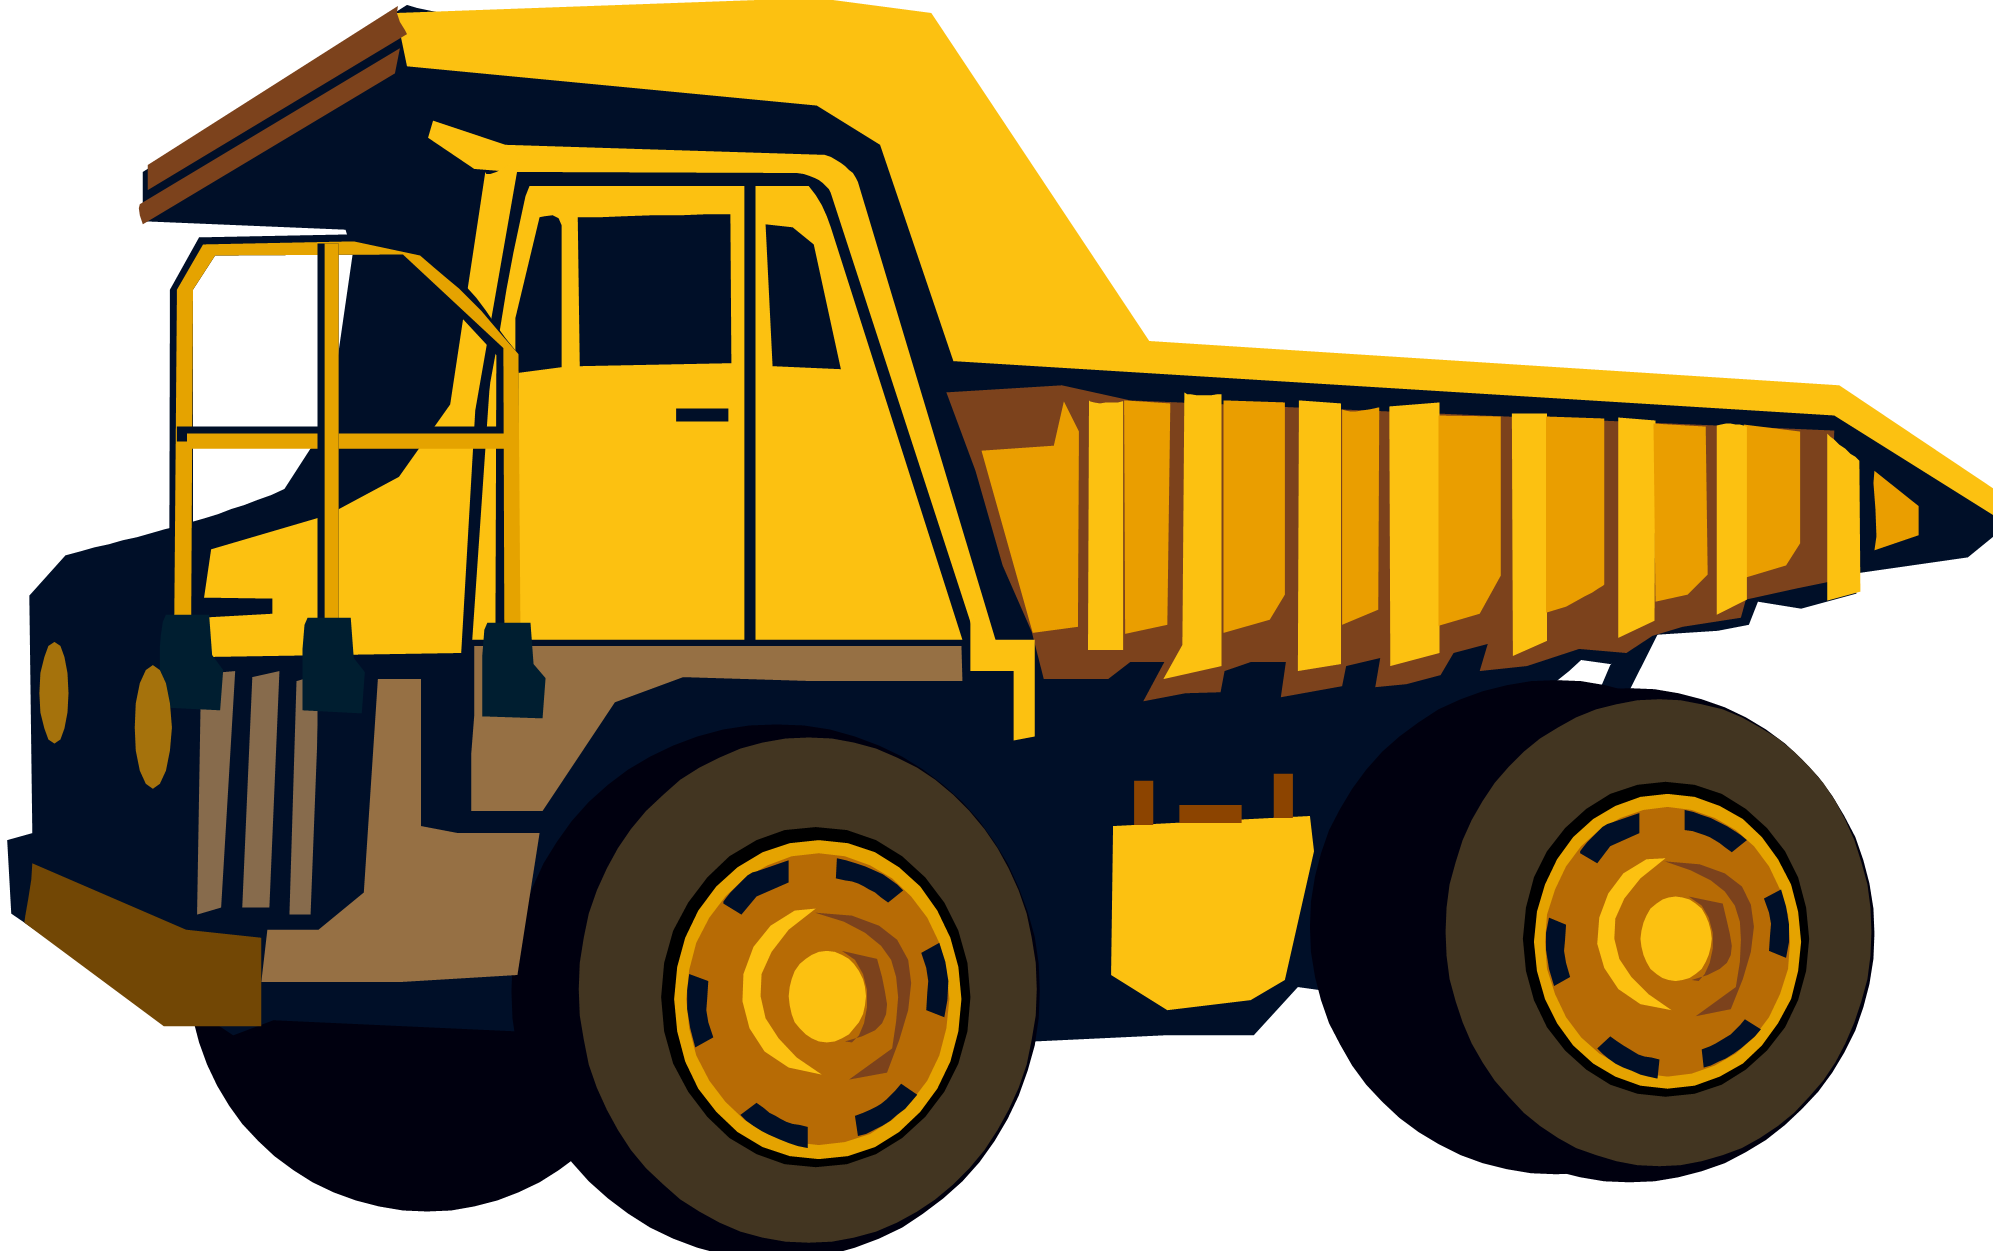 Minivan clipart kid. Excovator construction truck pencil